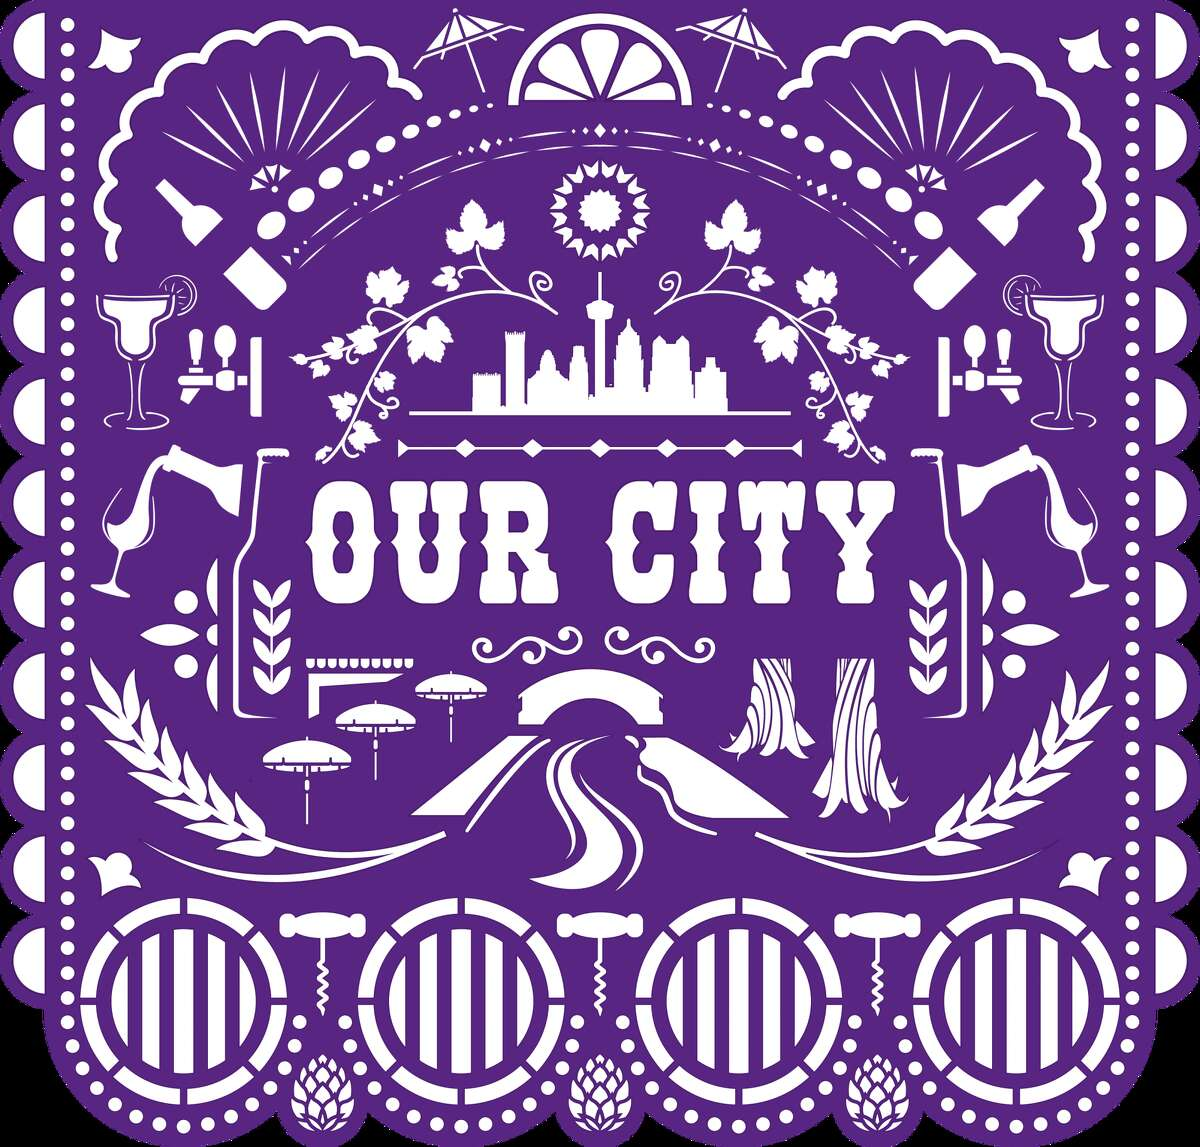 Our CityCulture. Community. HistoryA colorful culture building our history.